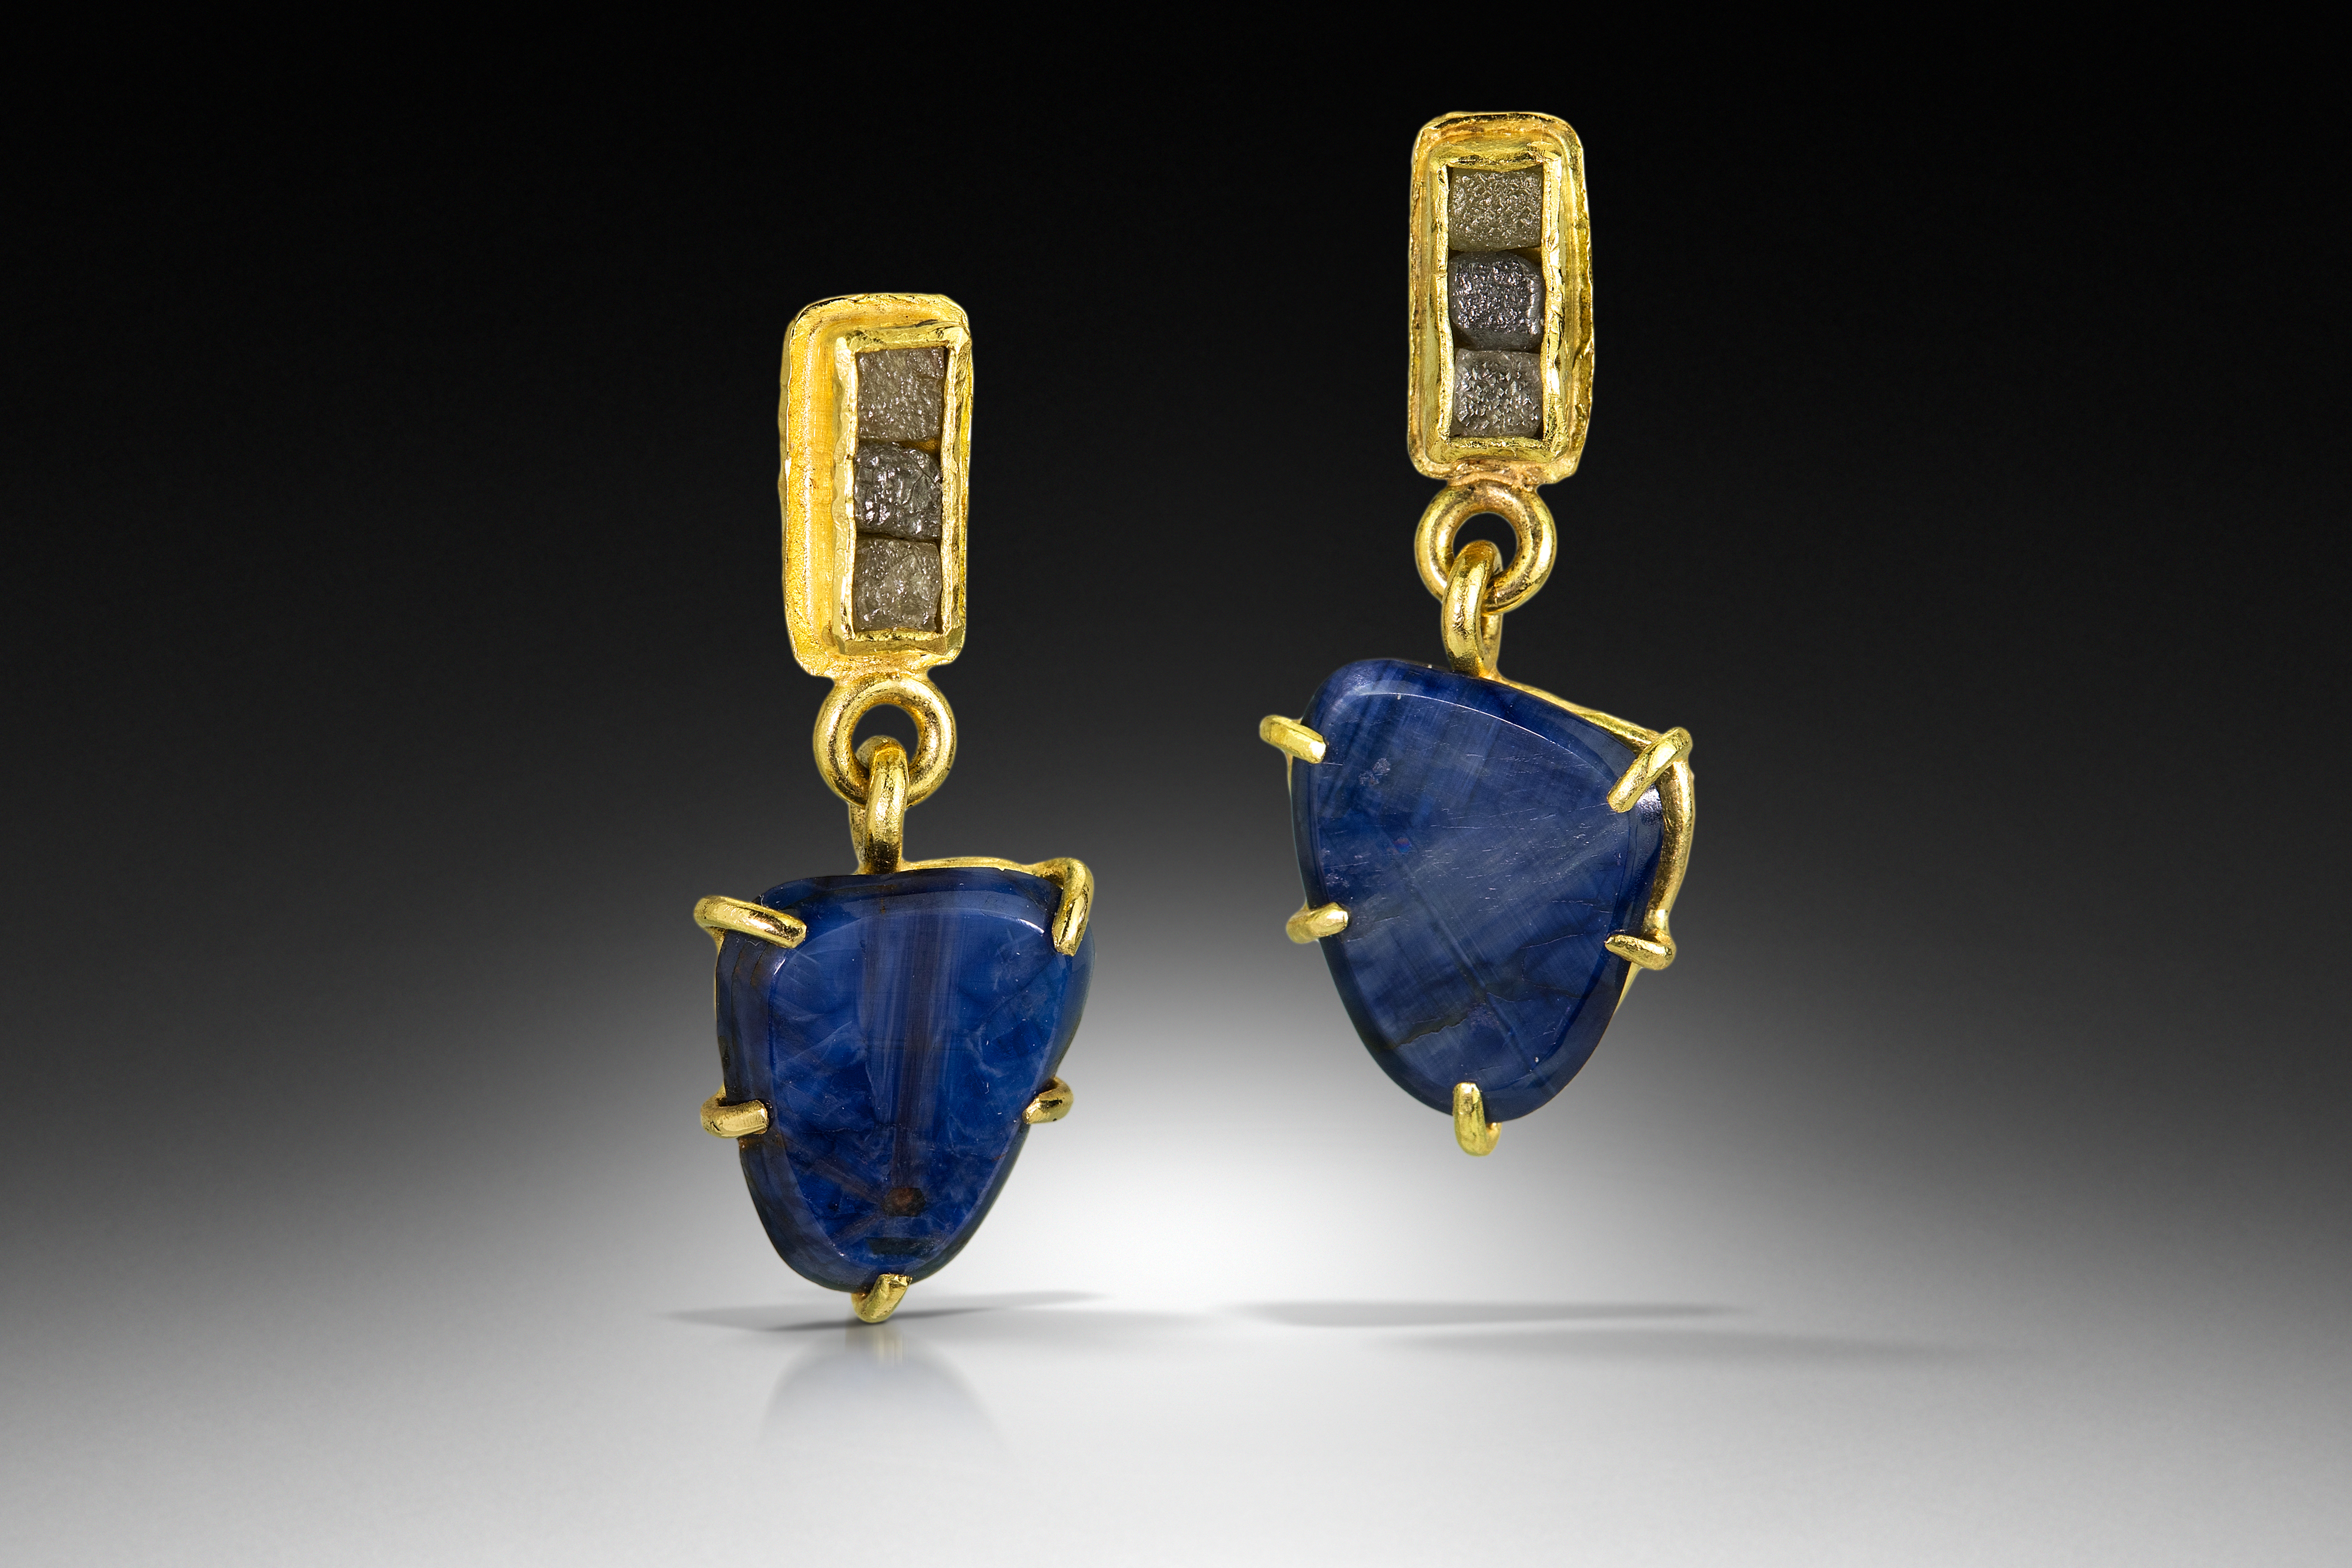 shield sapphire slice earrings hung from natural diamond cubes